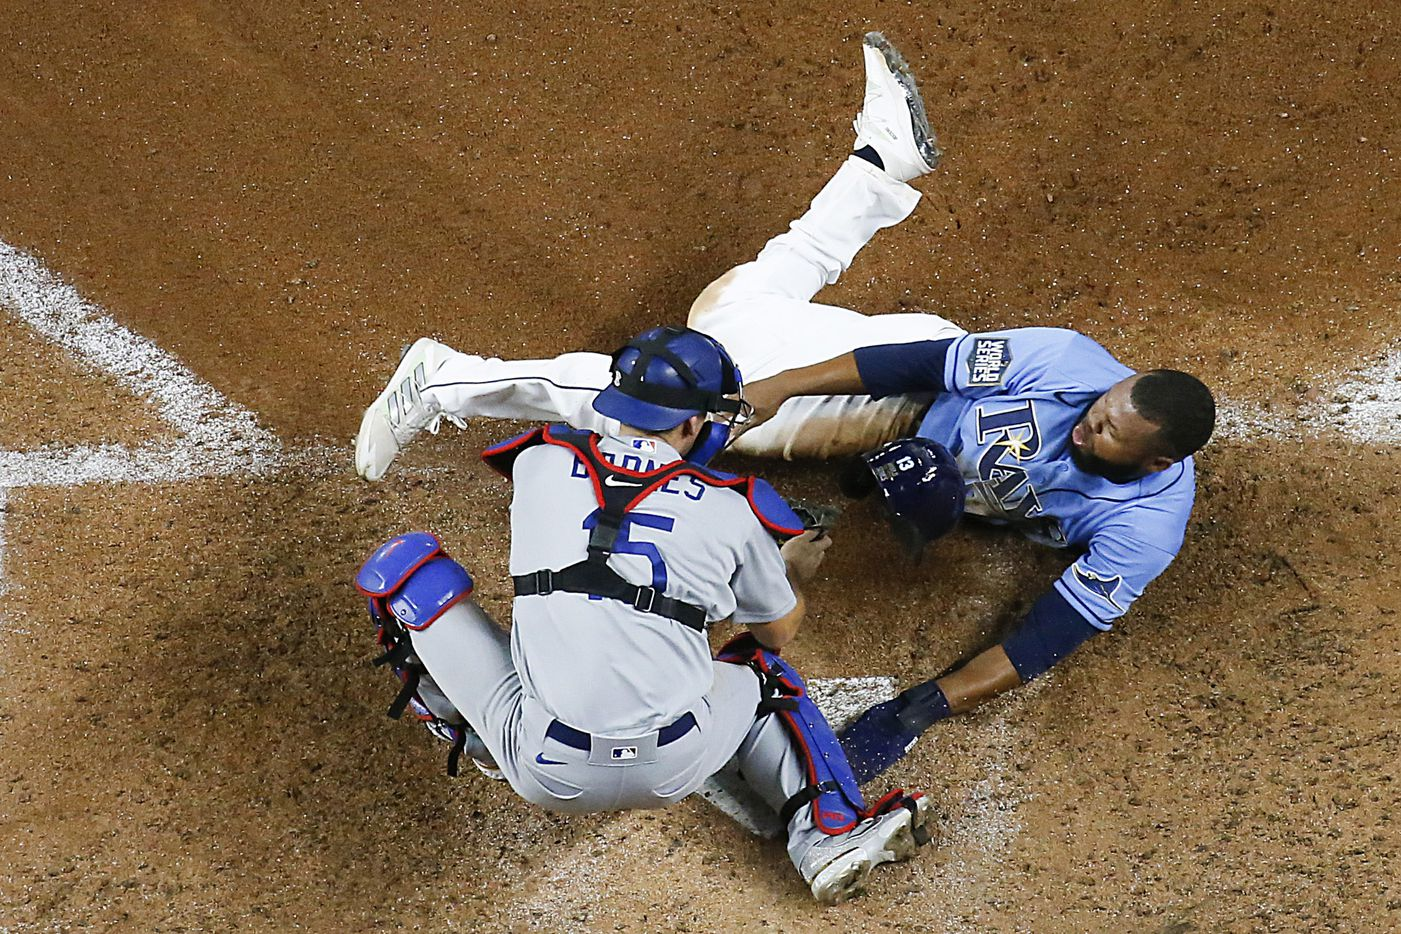 Tampa Bay Rays right fielder Manuel Margot (13) is tagged out by Los Angeles Dodgers catcher Austin Barnes (15) who was caught trying to steal home during the fourth inning of game five of the World Series at Globe Life Field on Sunday, October 25, 2020 in Arlington, Texas.